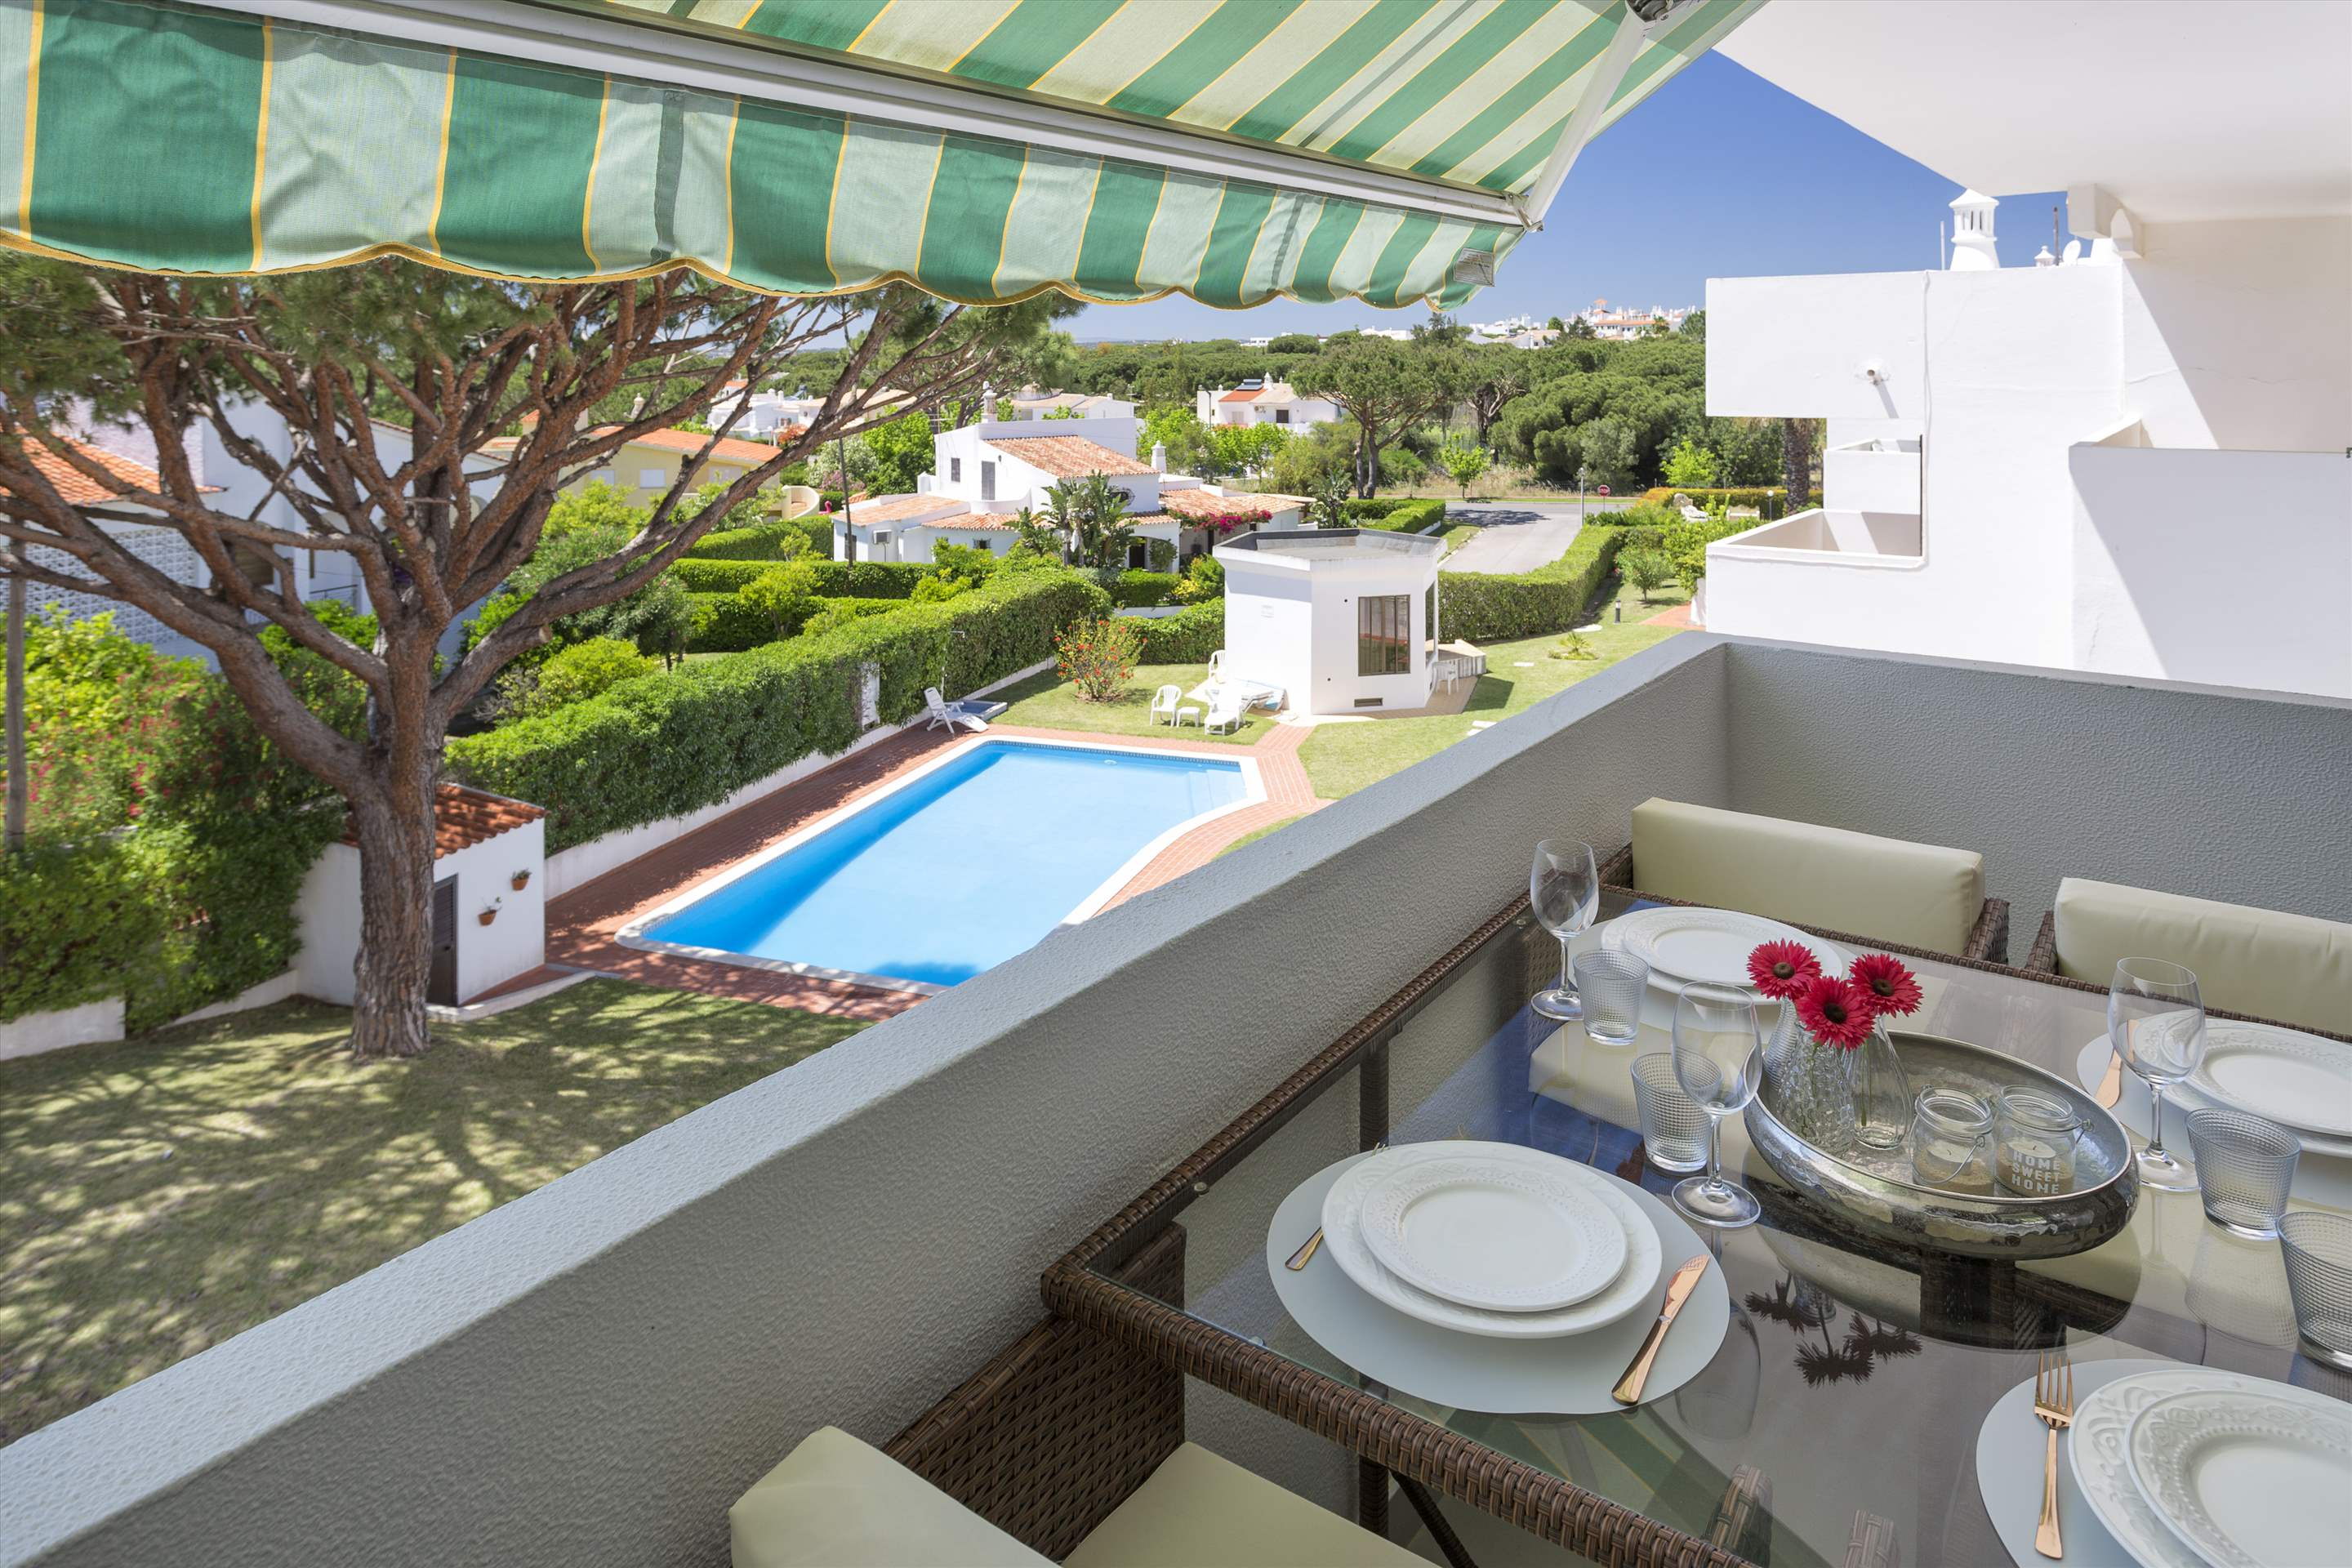 Apartment Jardim do Mar, 2 bedroom apartment in Vilamoura Area, Algarve Photo #12